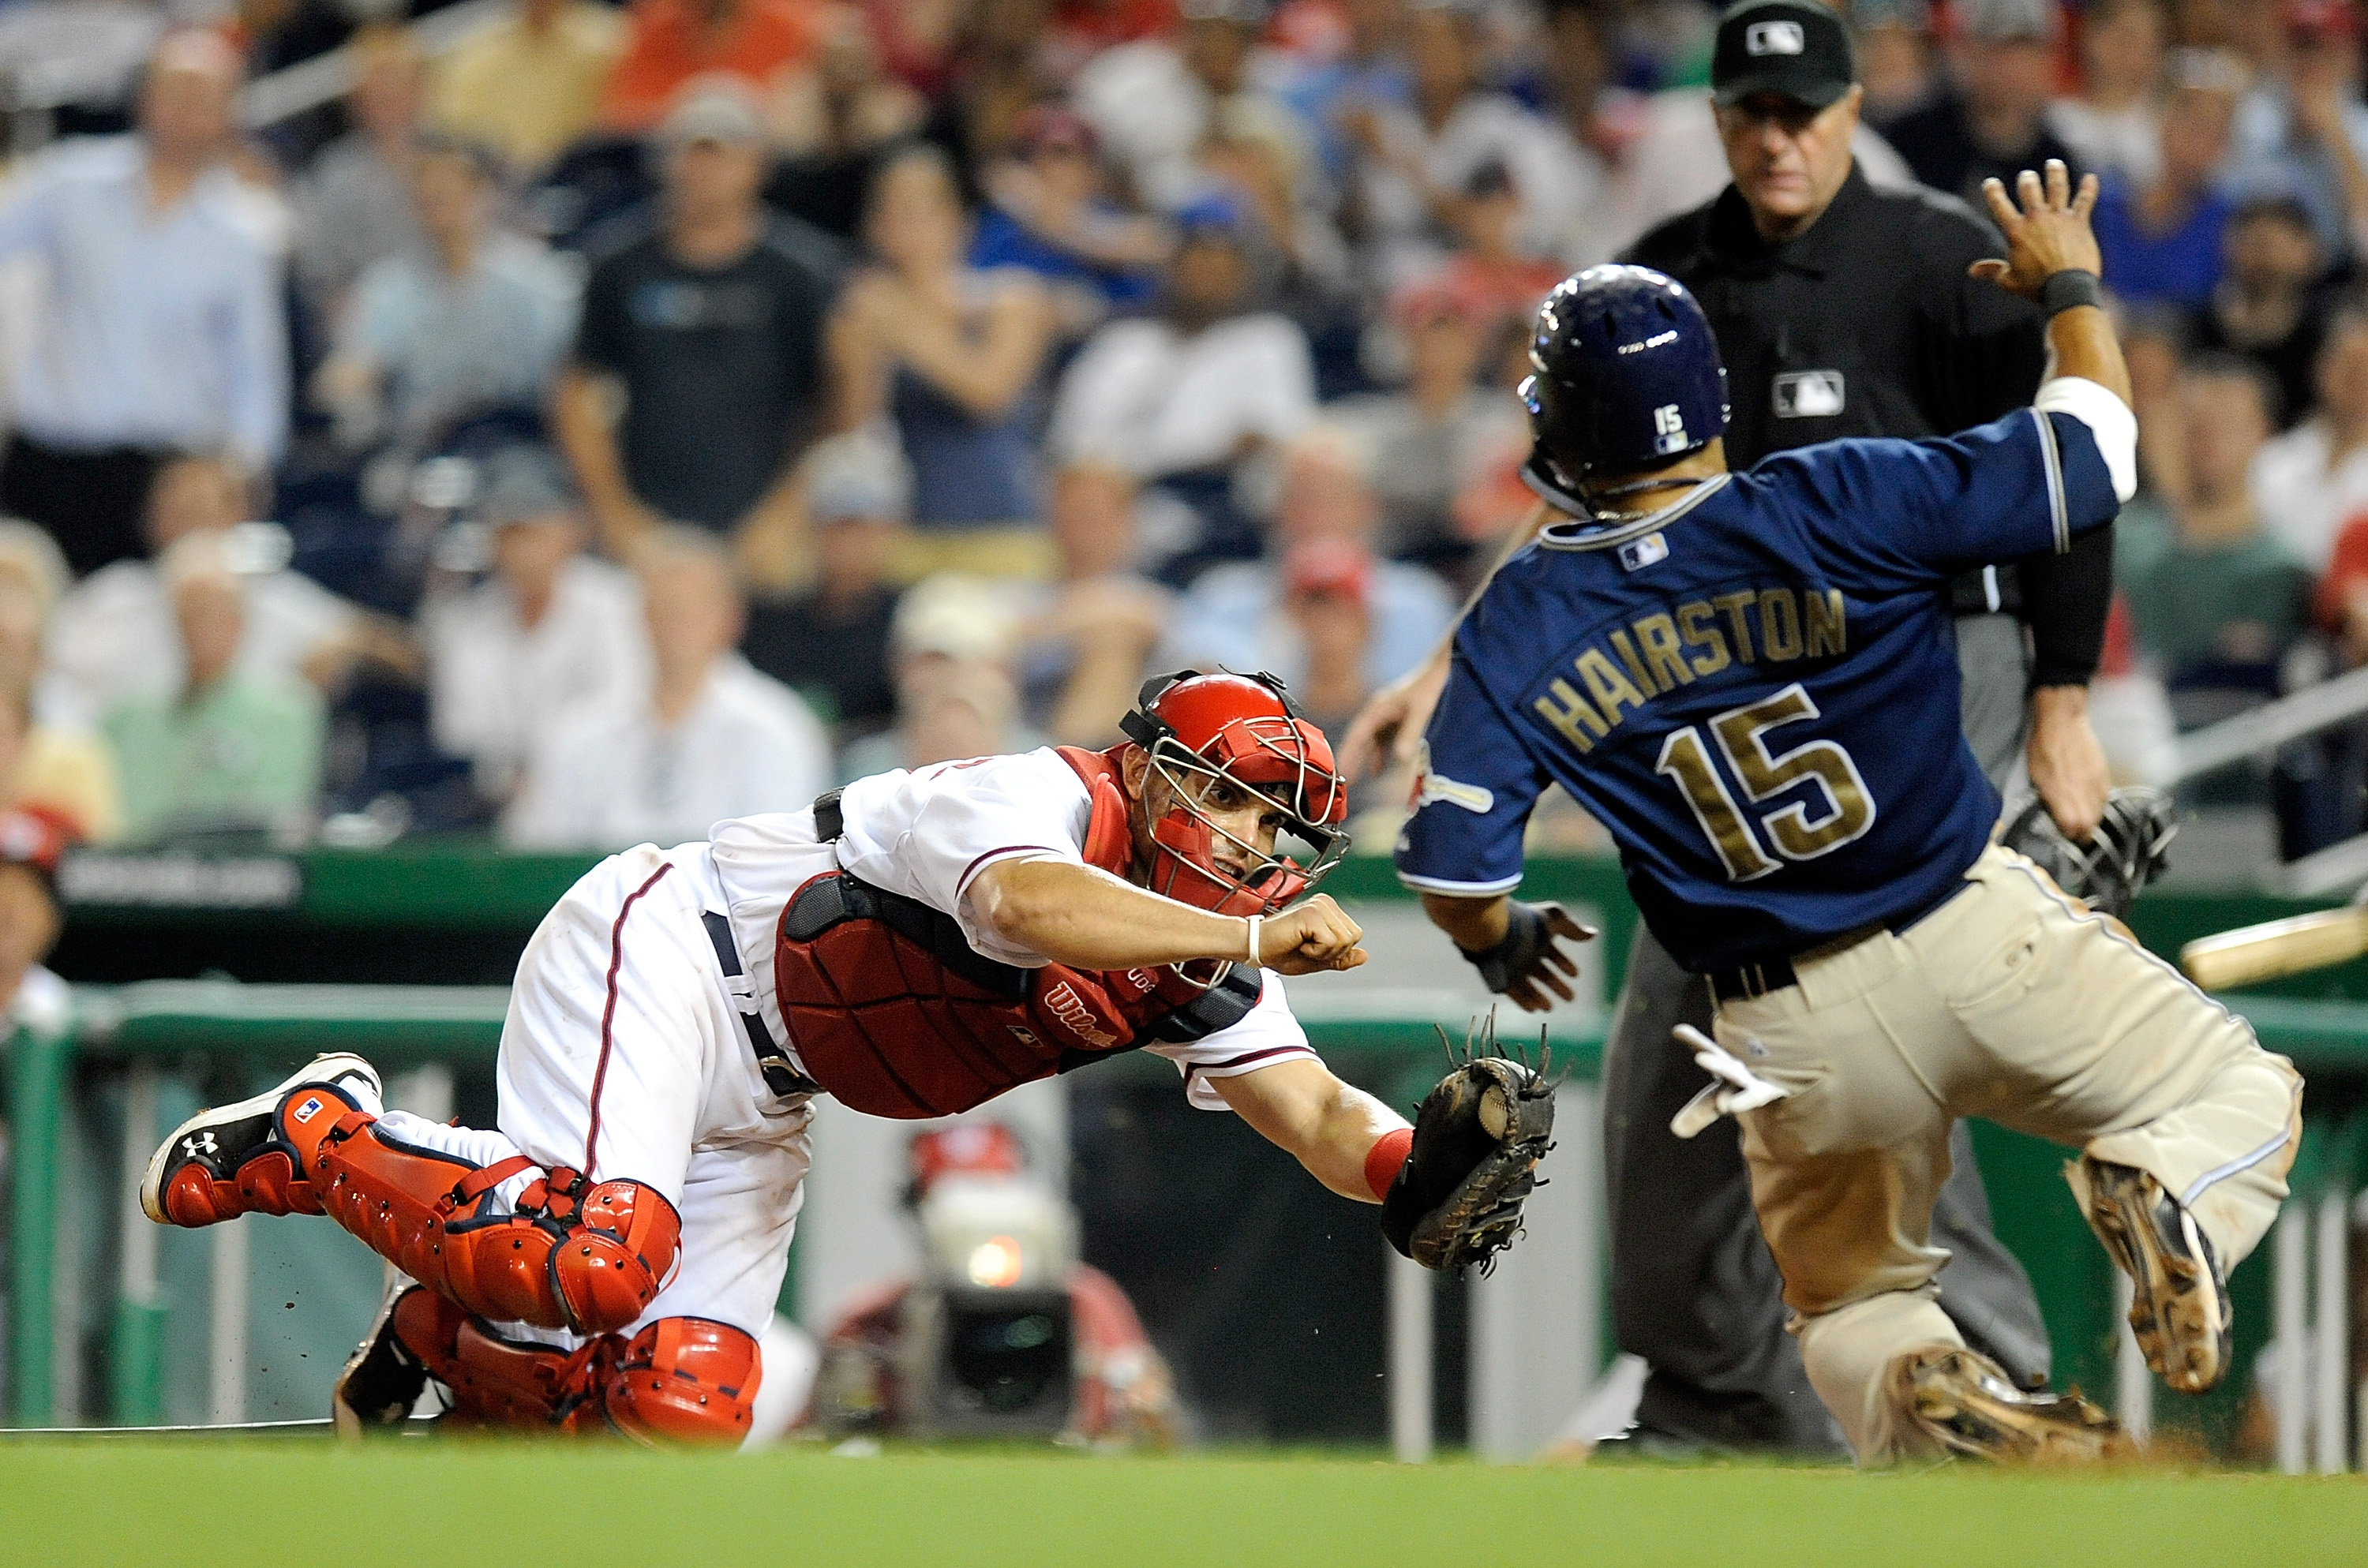 WASHINGTON - JULY 06:  Jerry Hairston Jr. #15 of the San Diego Padres is tagged out at home plate to end the ninth inning by Ivan Rodriguez #7 of the Washington Nationals at Nationals Park on July 6, 2010 in Washington, DC.  (Photo by Greg Fiume/Getty Ima